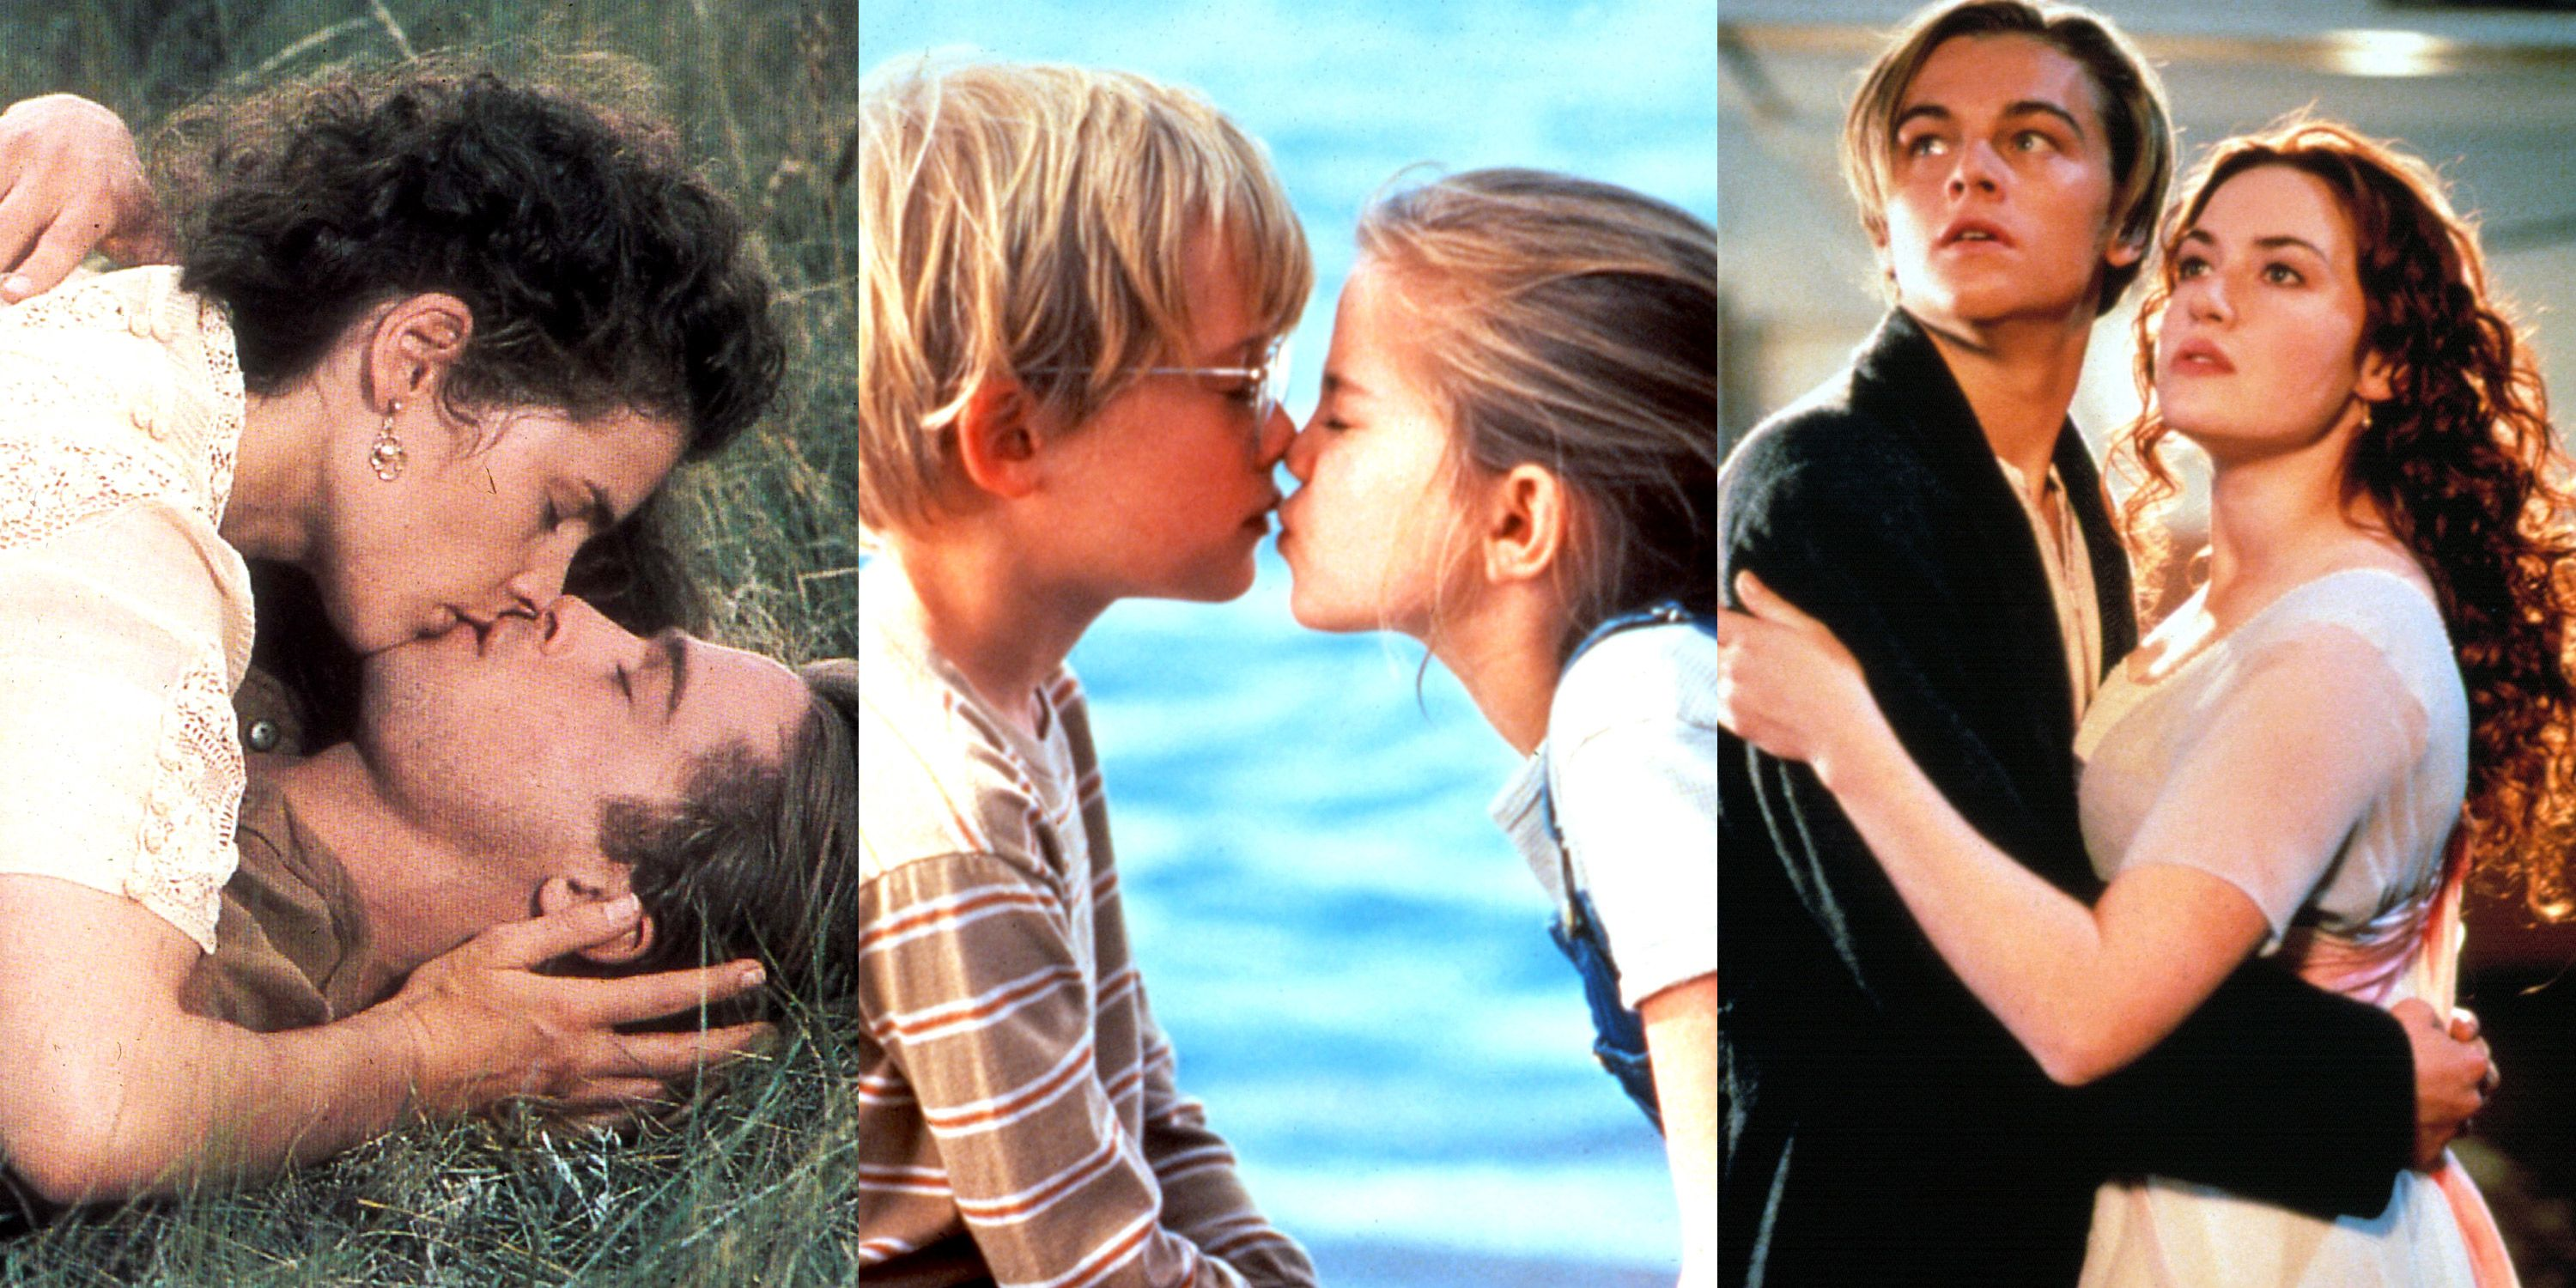 21 Saddest Movies of All Time That Will Actually Make You Cry